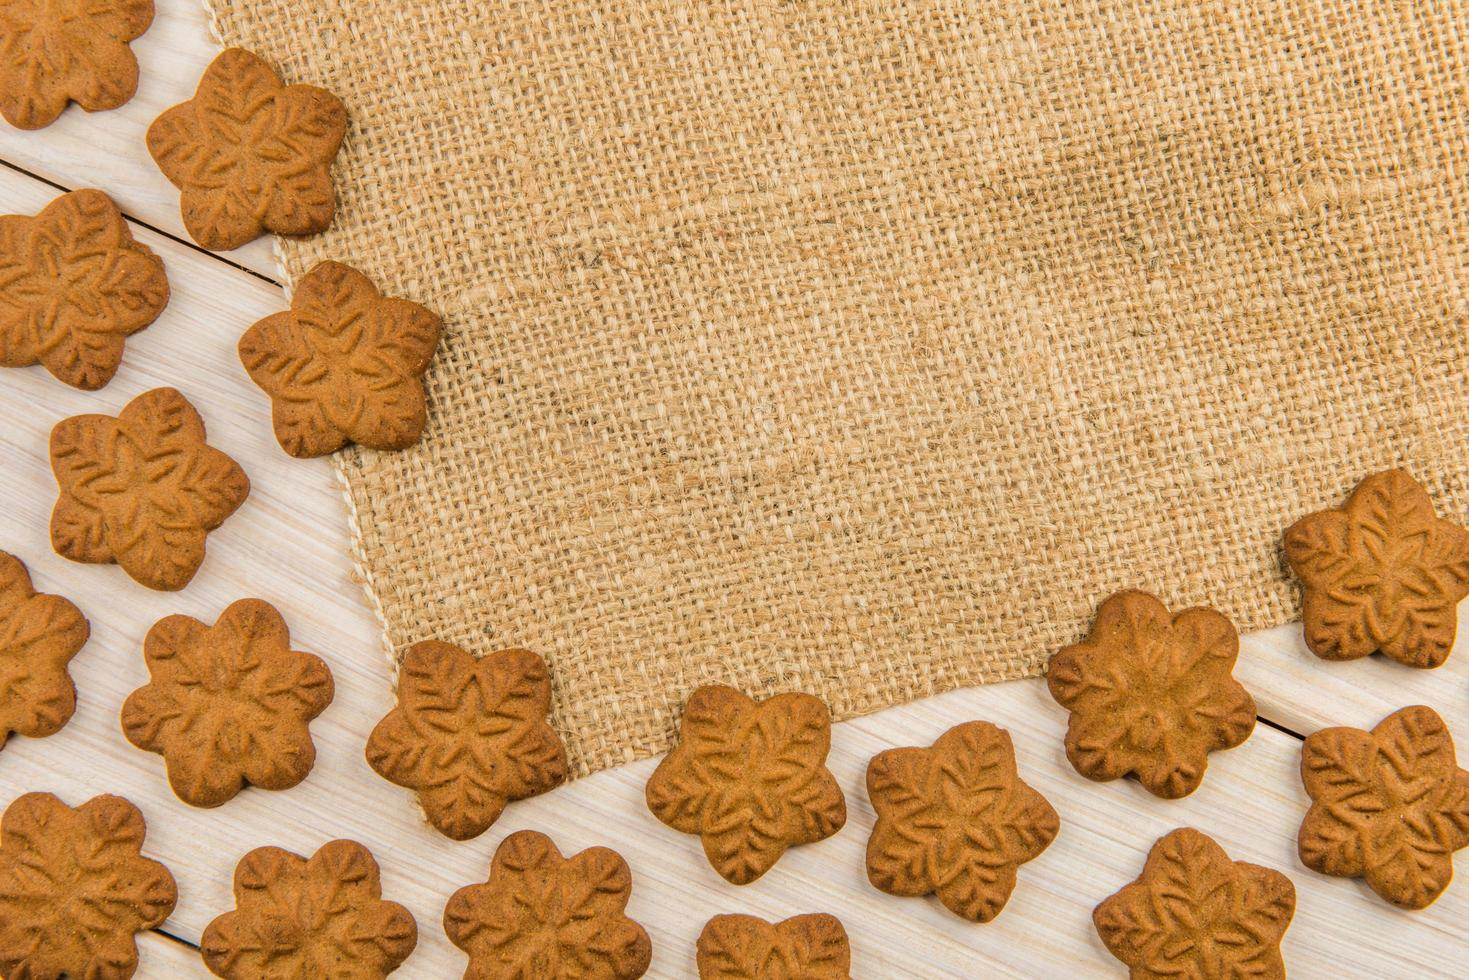 Snowflake gingerbread cookies with sackcloth photo